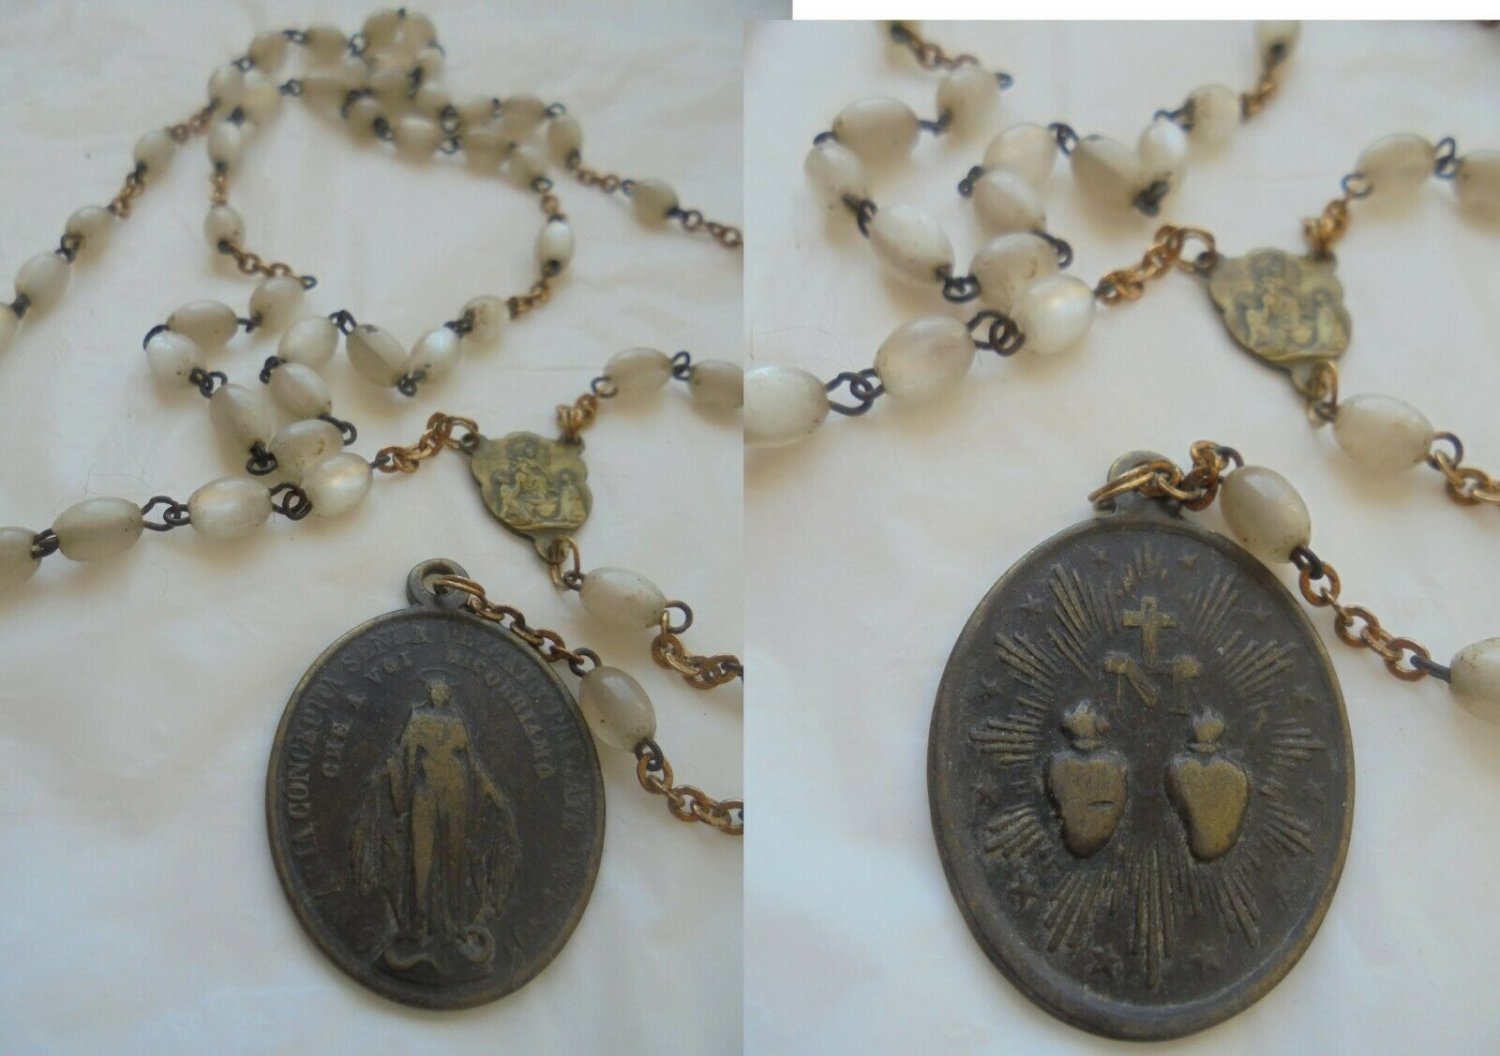 PRAYING ROSARY mother of pearl effect Immaculate Conception Pope Pius IX 1854 Original